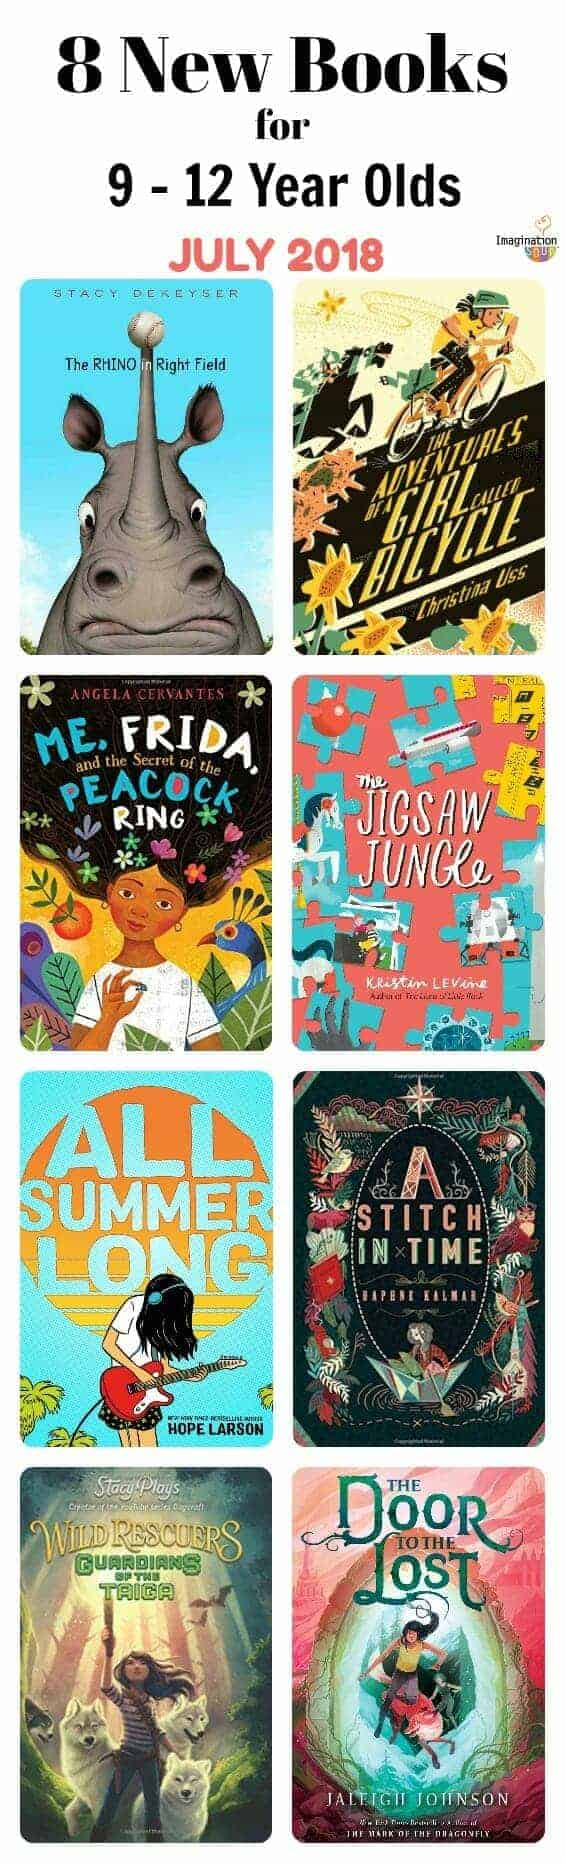 8 New Middle Grade Books, July 2018